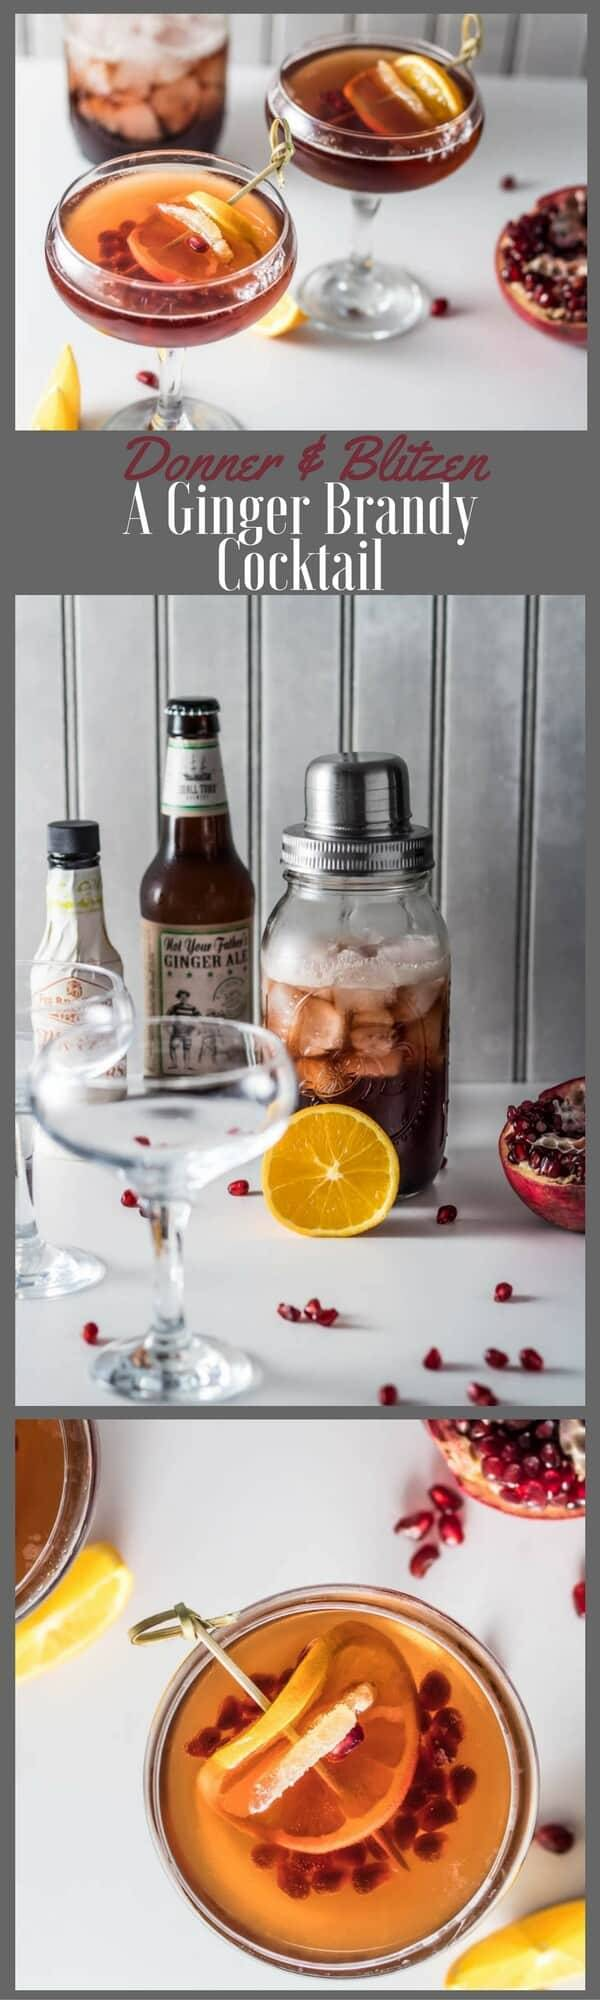 Donner and Blitzen: A Ginger Brandy Cocktail - Combine ginger simple syrup, brandy, pomegranate molasses, and pomegranate juice with ice in your cocktail shaker, pour into your favorite glassware, top off with ginger beer, and a few shakes of orange bitters. Garnish with an orange slice, and crystallized ginger. Bellissimo!